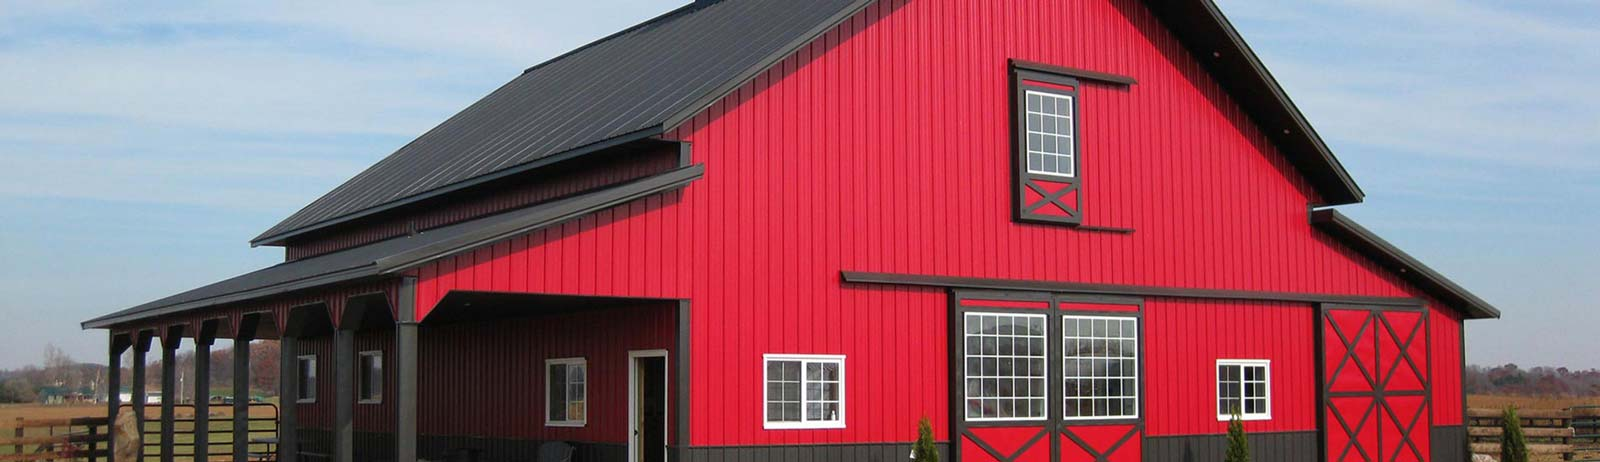 Steel Building Red Bard